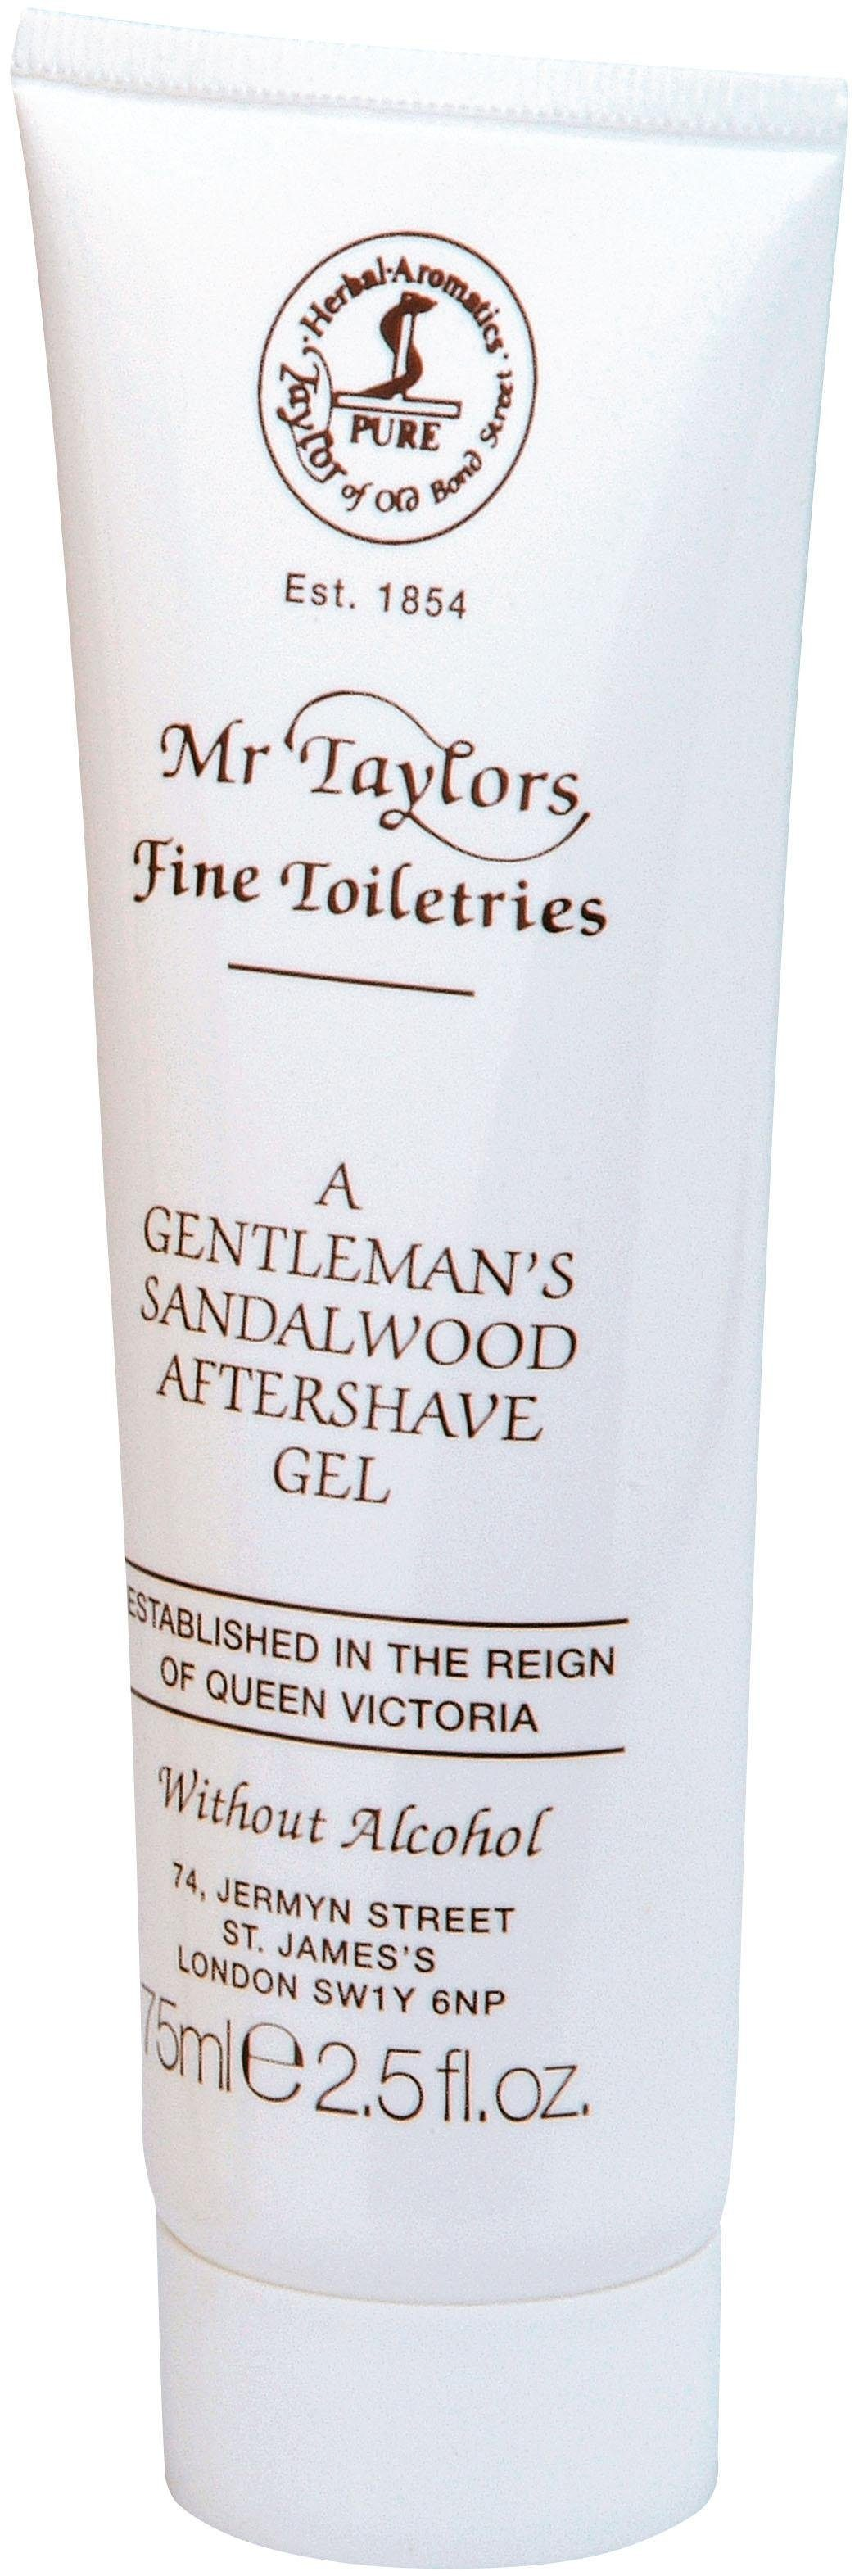 Taylor of Old Bond Street, »Aftershave Gel Sandalwood«, Aftershave